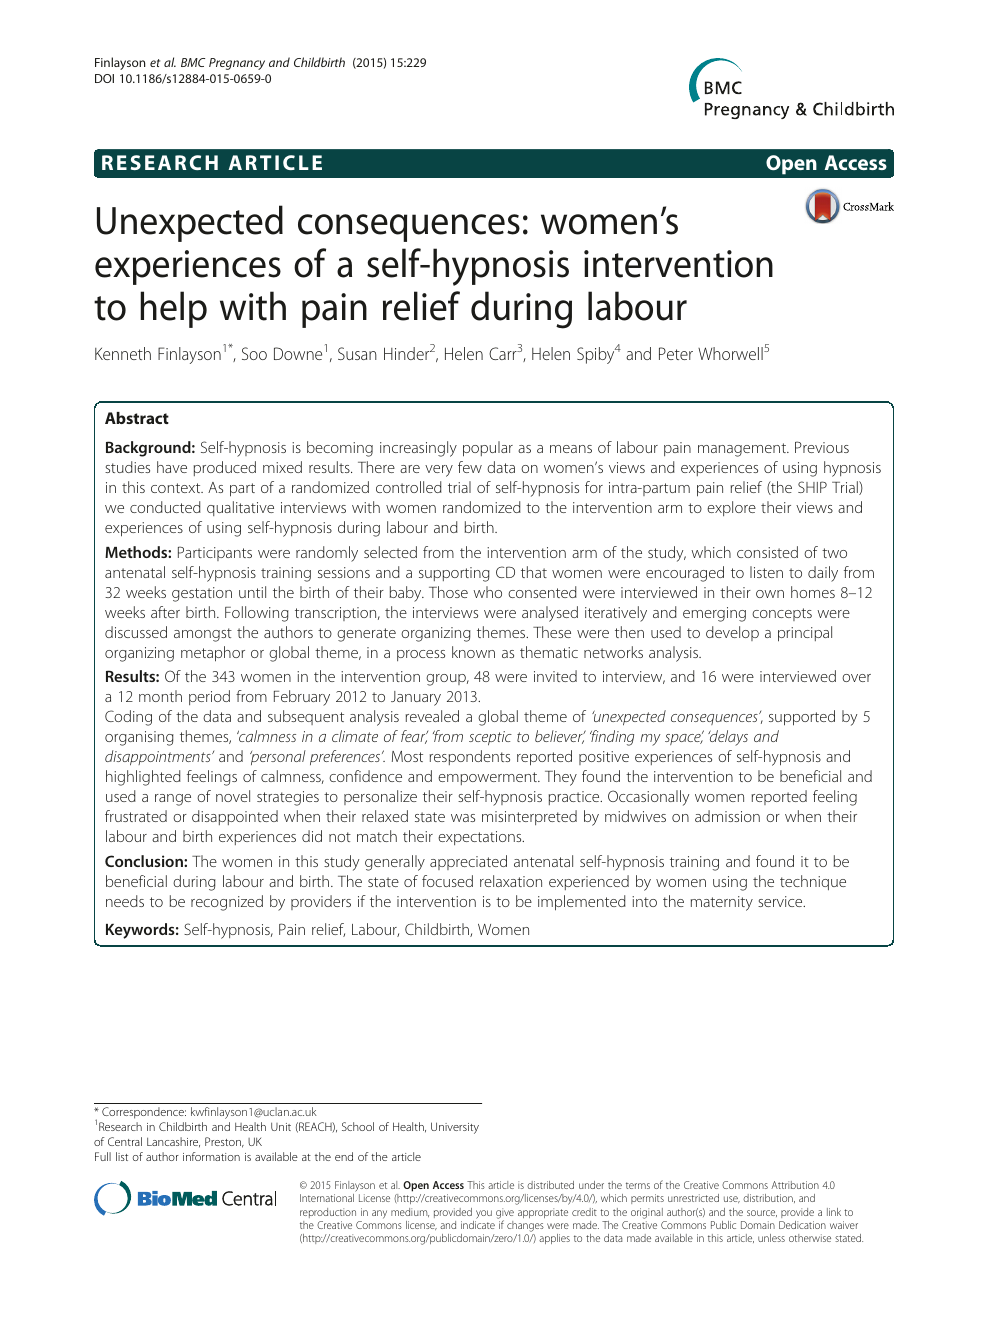 Unexpected consequences: women's experiences of a self